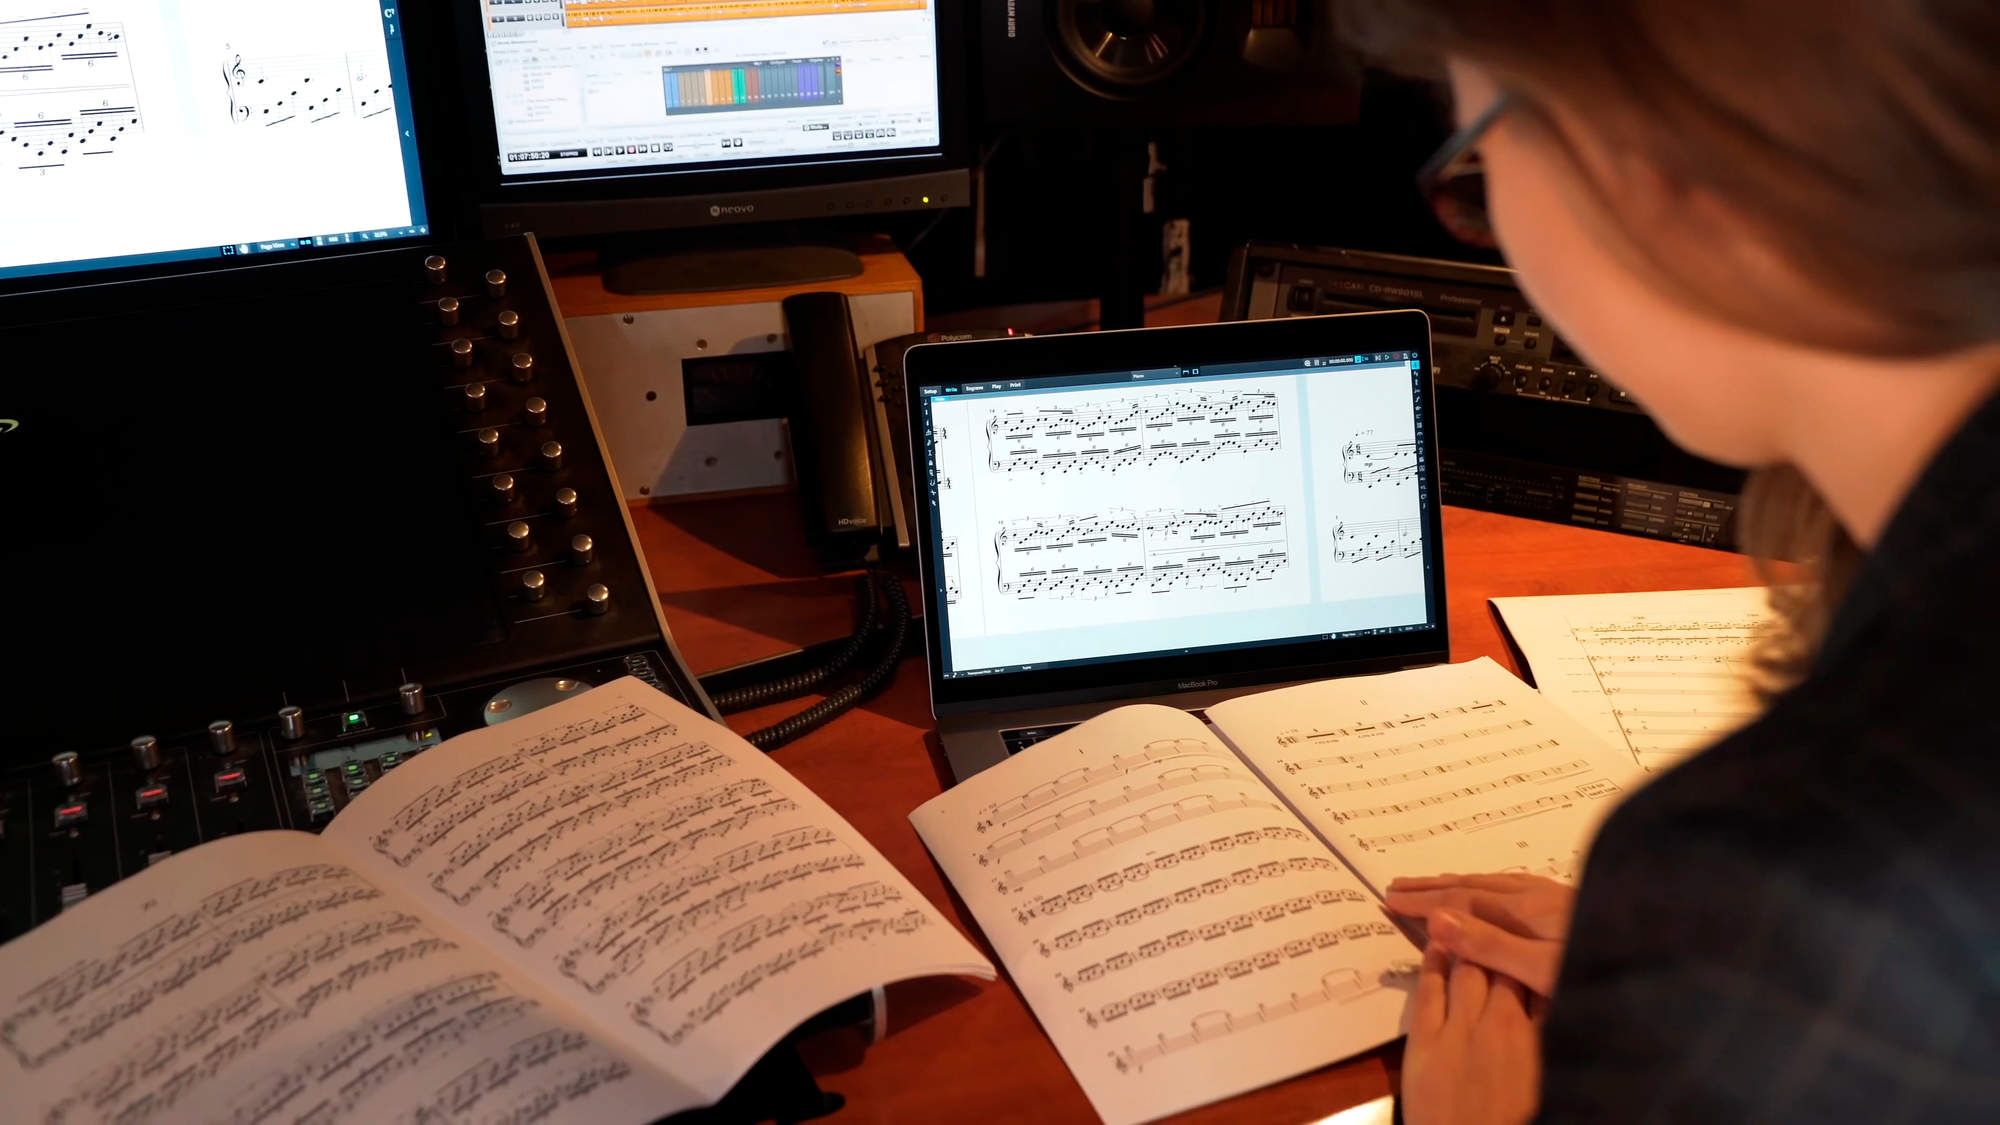 Music notation software: Composing & writing with Dorico | Steinberg